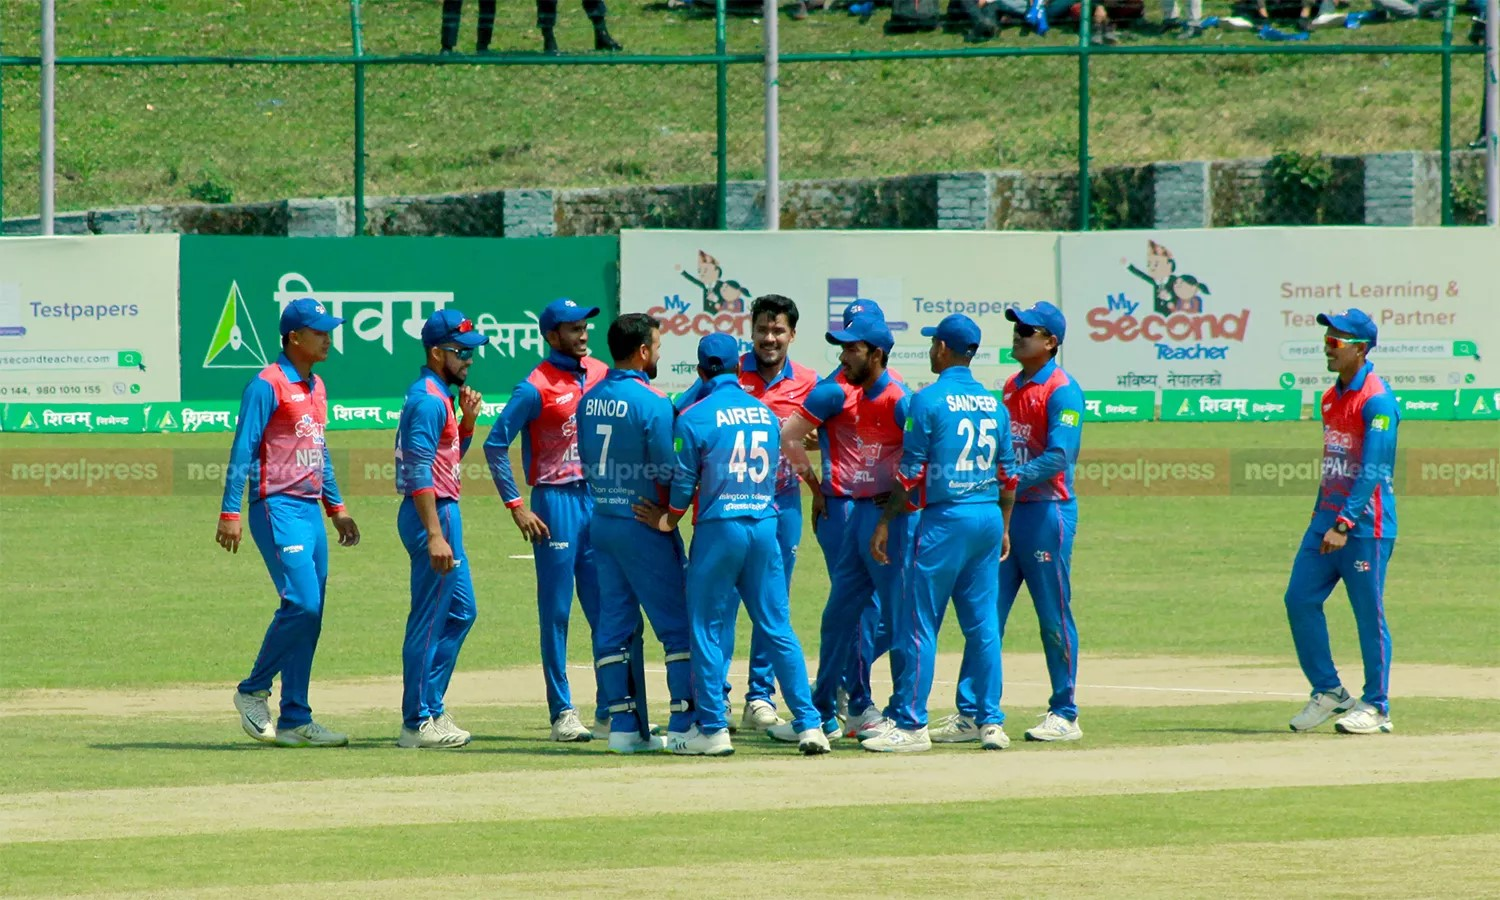 Triangular Series Final to take place today at Tribhuvan University International Cricket Ground